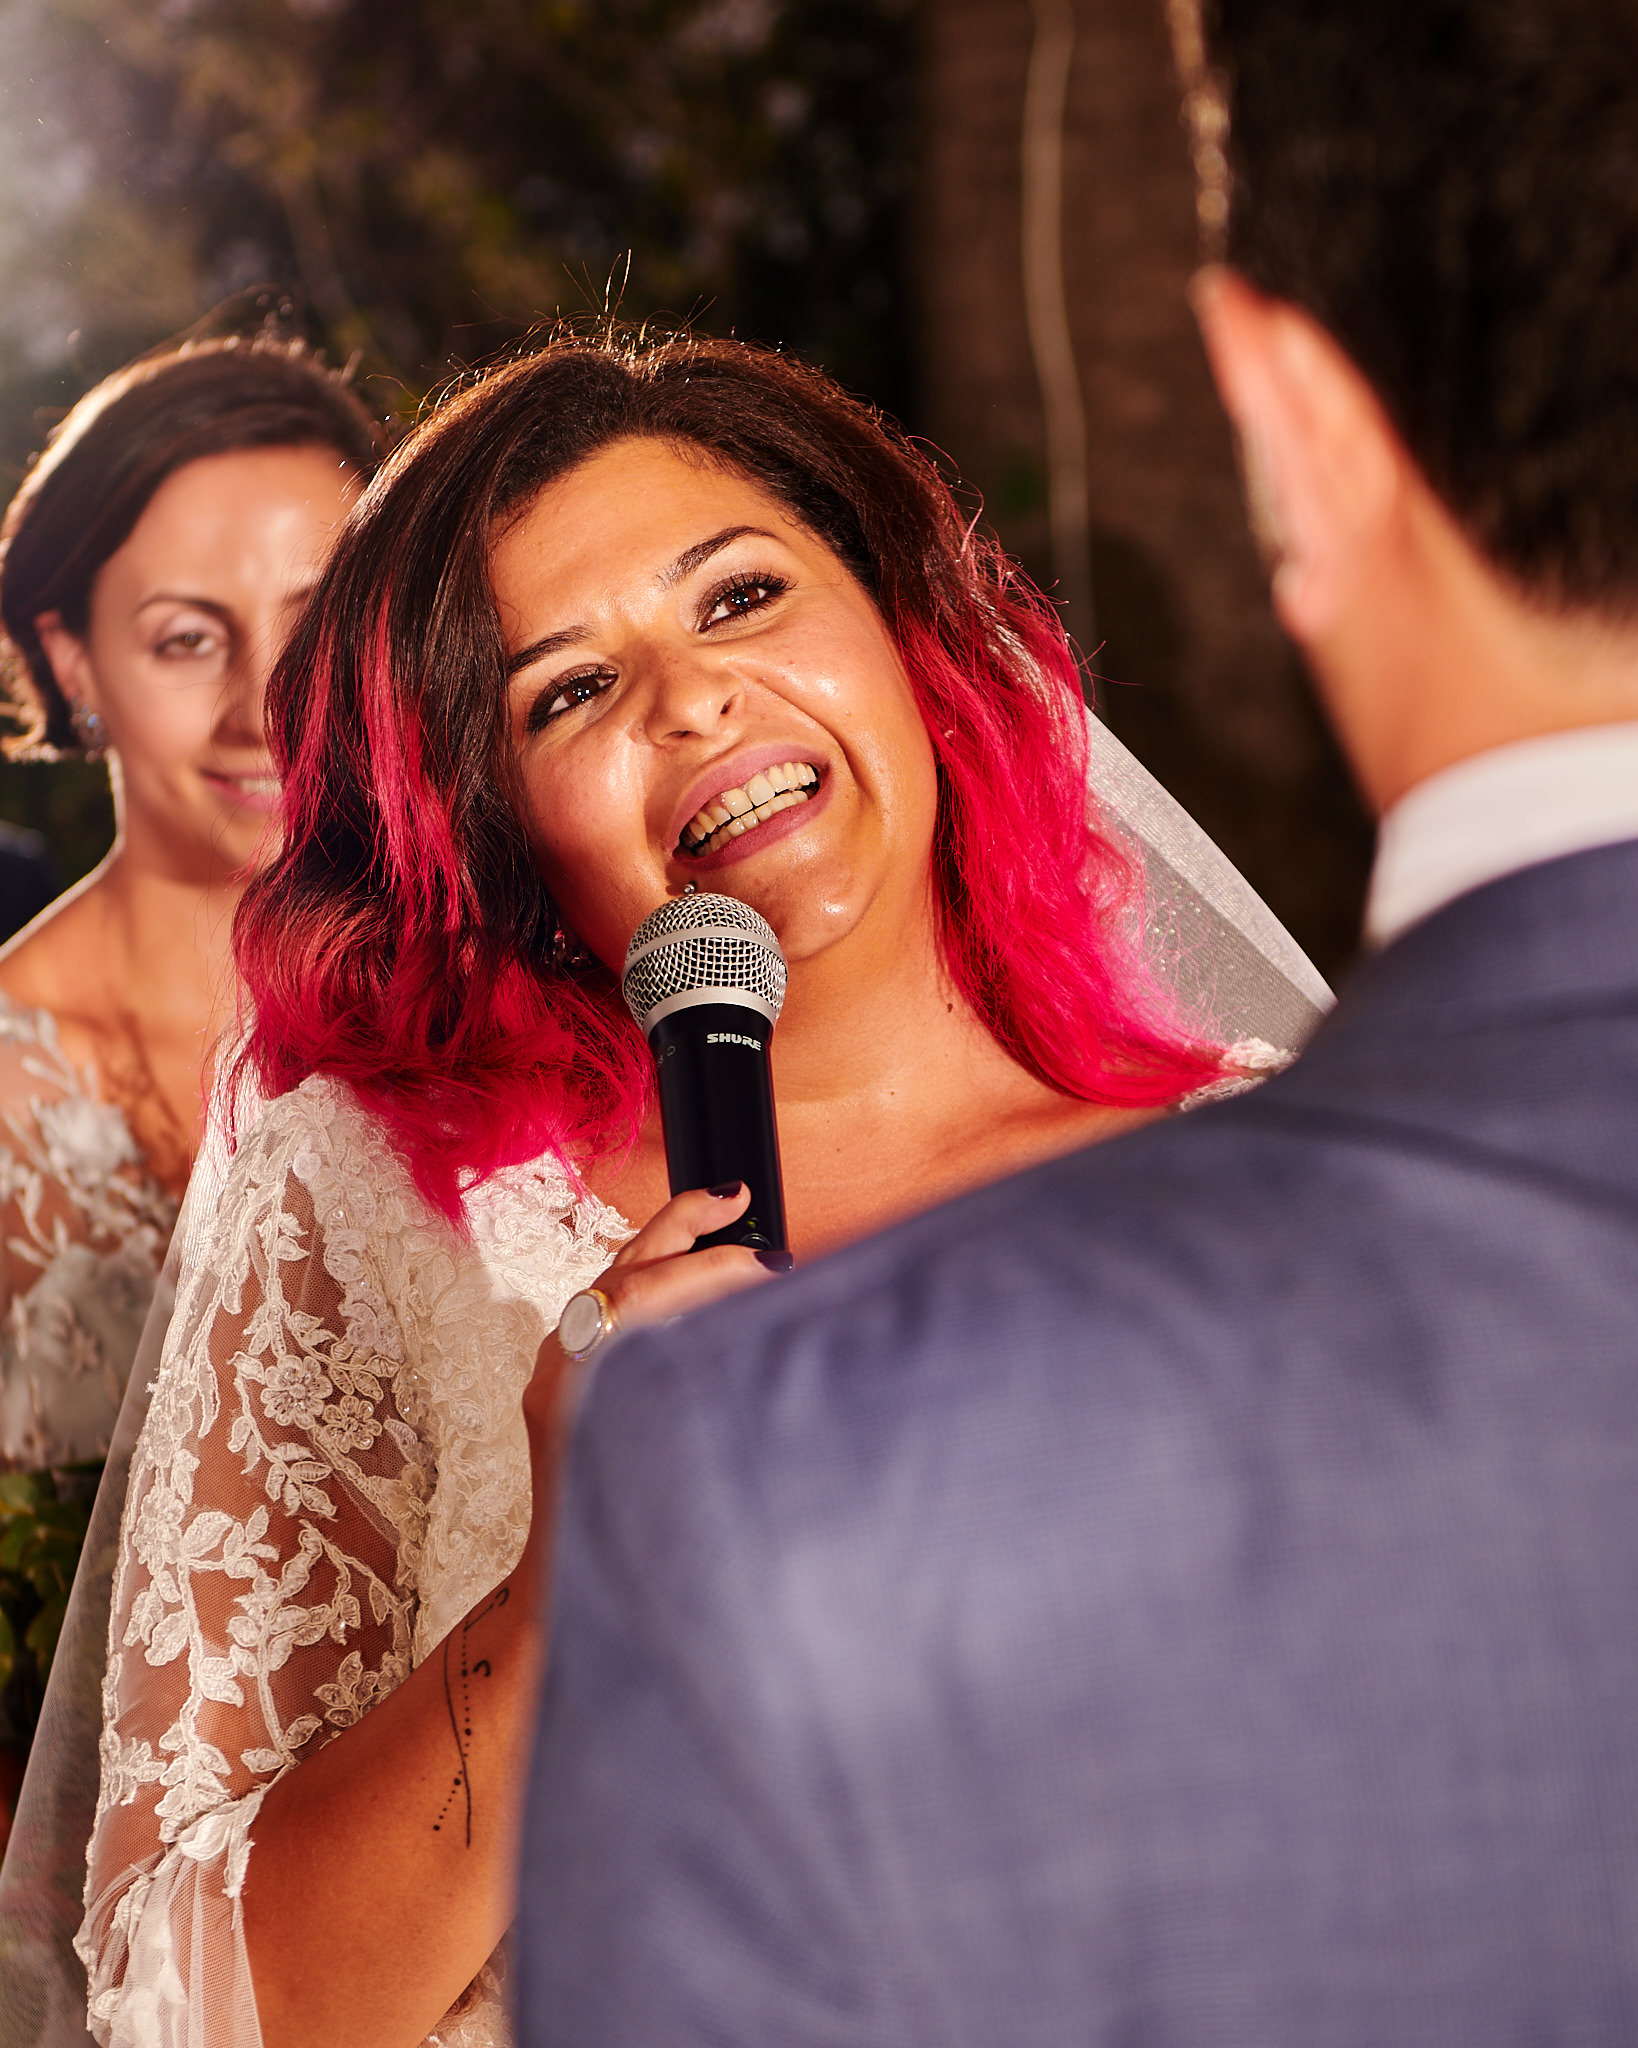 The wedding of Rima and Ibrahim, held at the Palm Beach hotel in Larnaca, Cyprus  - by International destination wedding photographer -  Richard King  A wedding full of Lebaneese charm themed around olive trees.